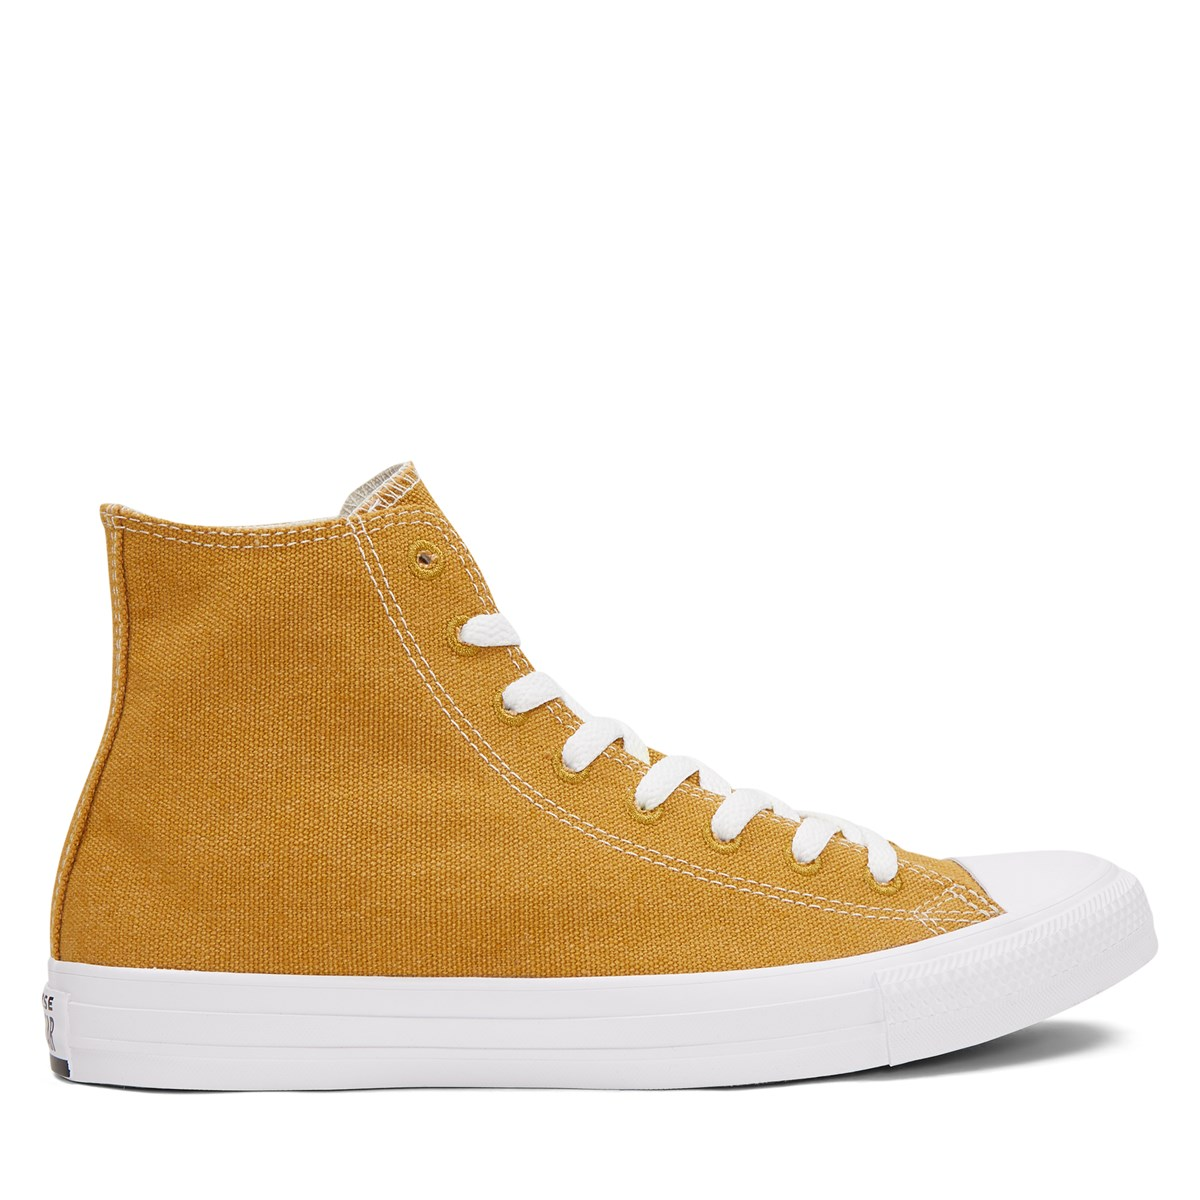 Women's Chuck Taylor All Star CLC Renew Sneakers in Yellow